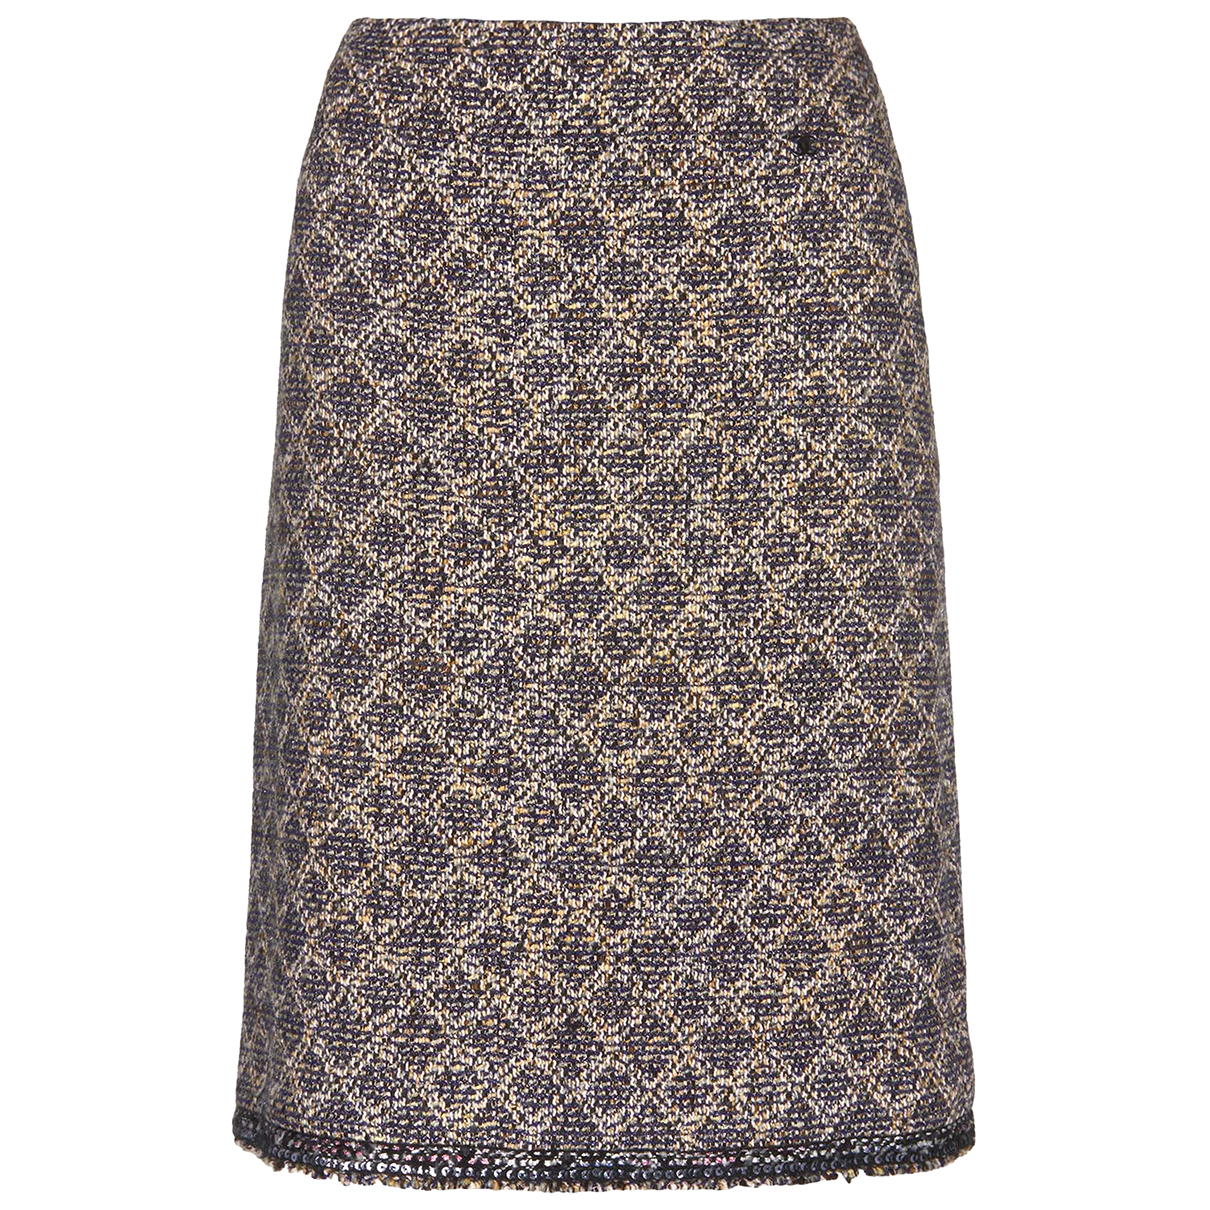 Chanel N Multicolour skirt for Women 12 UK